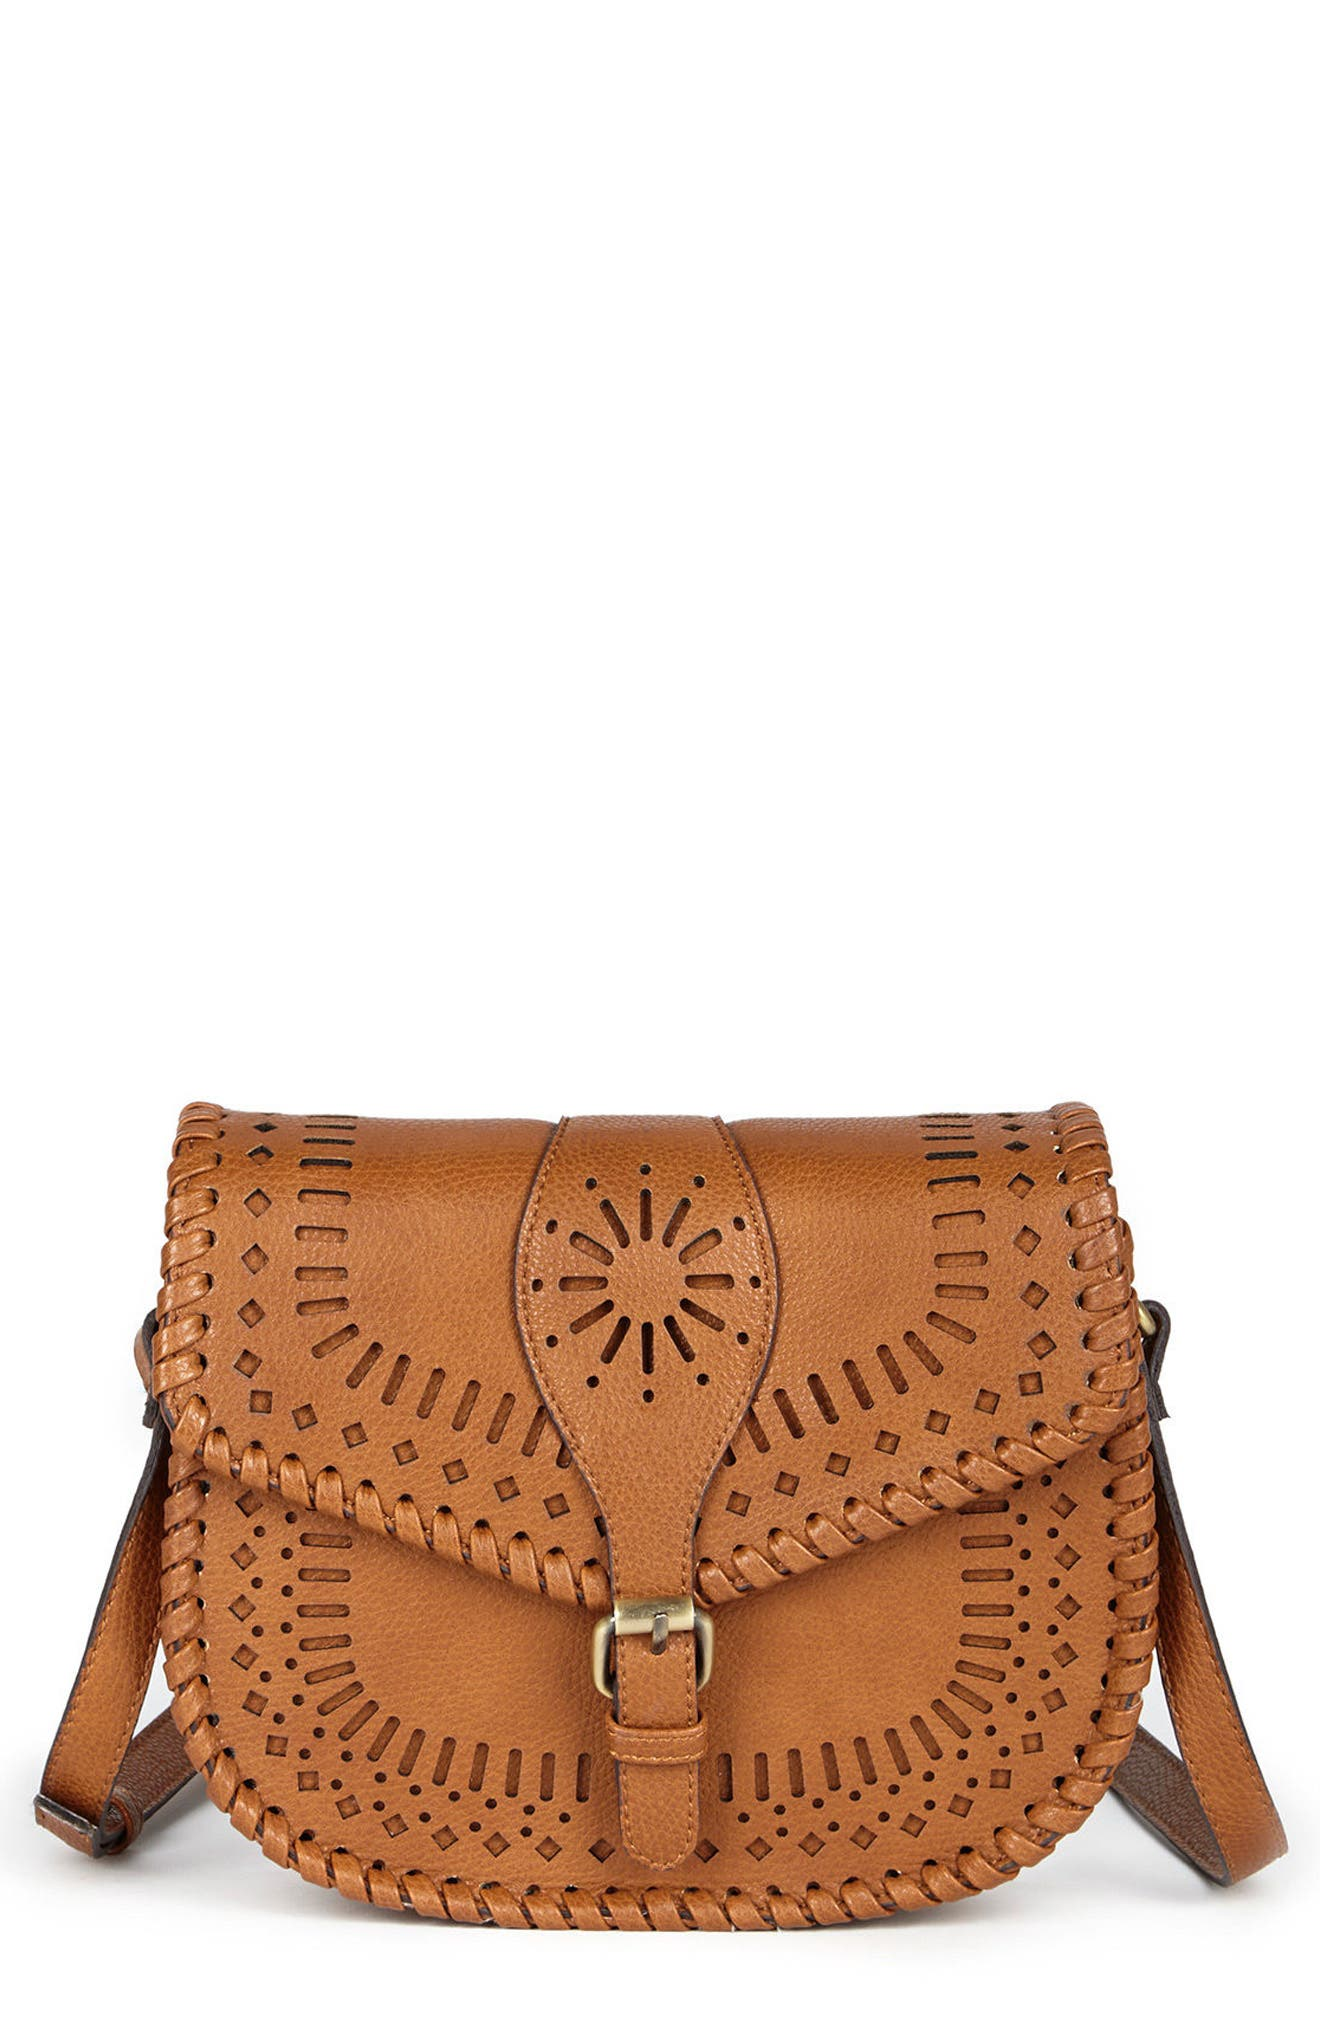 Sole Society 'Kianna' Perforated Faux Leather Crossbody Bag